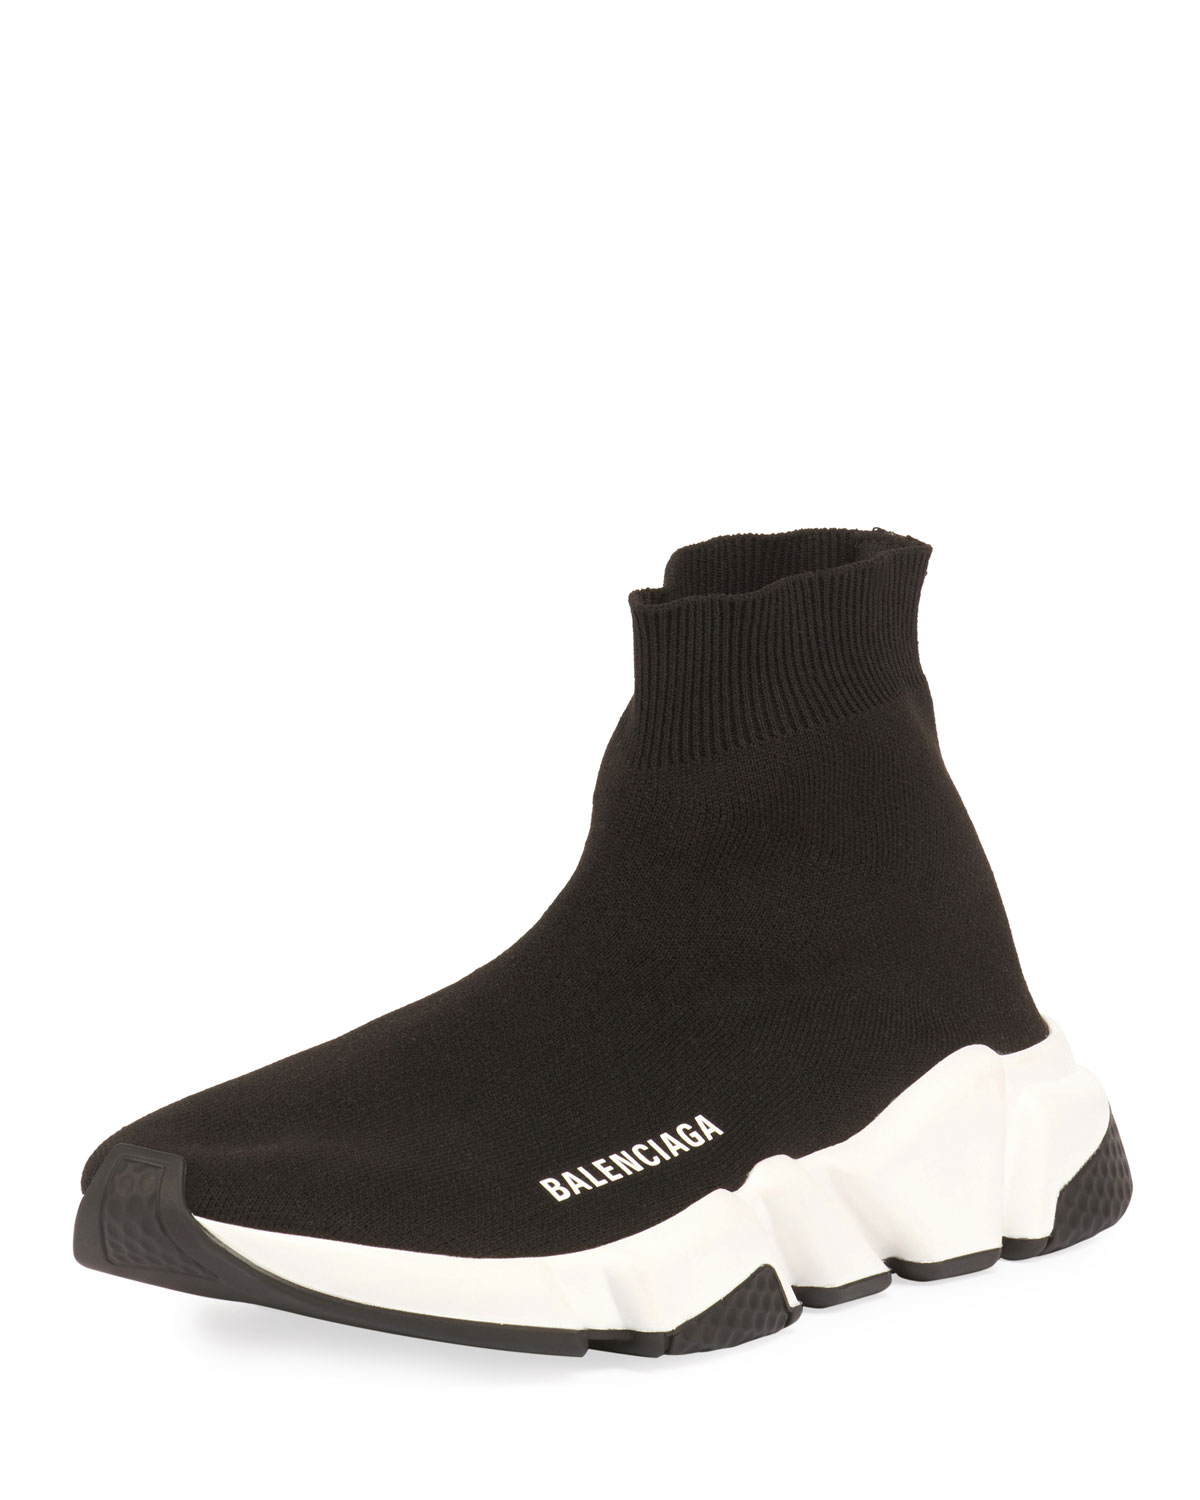 Balenciaga Stretch Knit High Top Trainer Noir Neiman Marcus